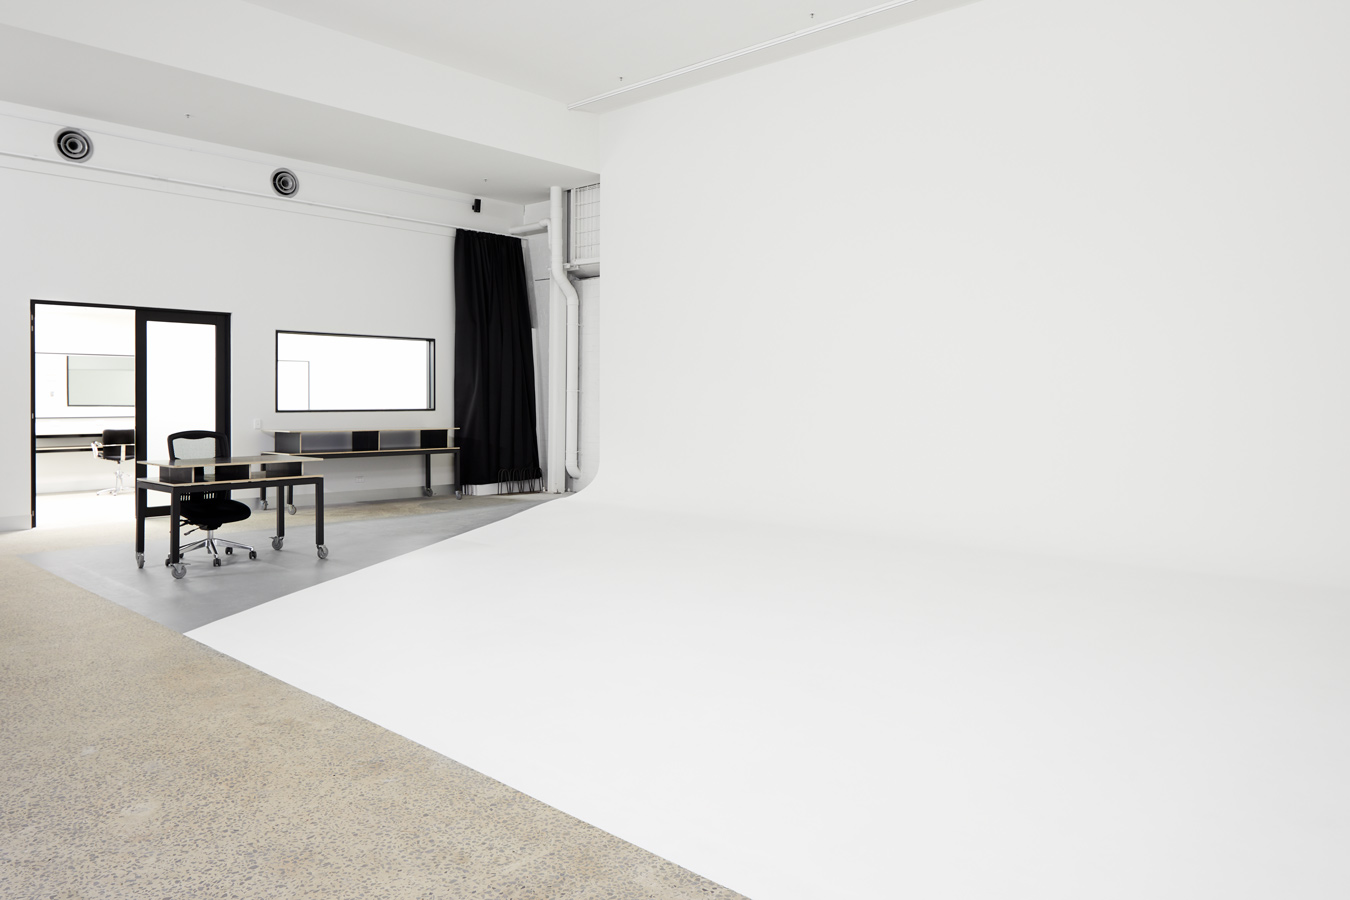 SUNSTUDIOS Melbourne Studio 1 cyclorama professional photography studio